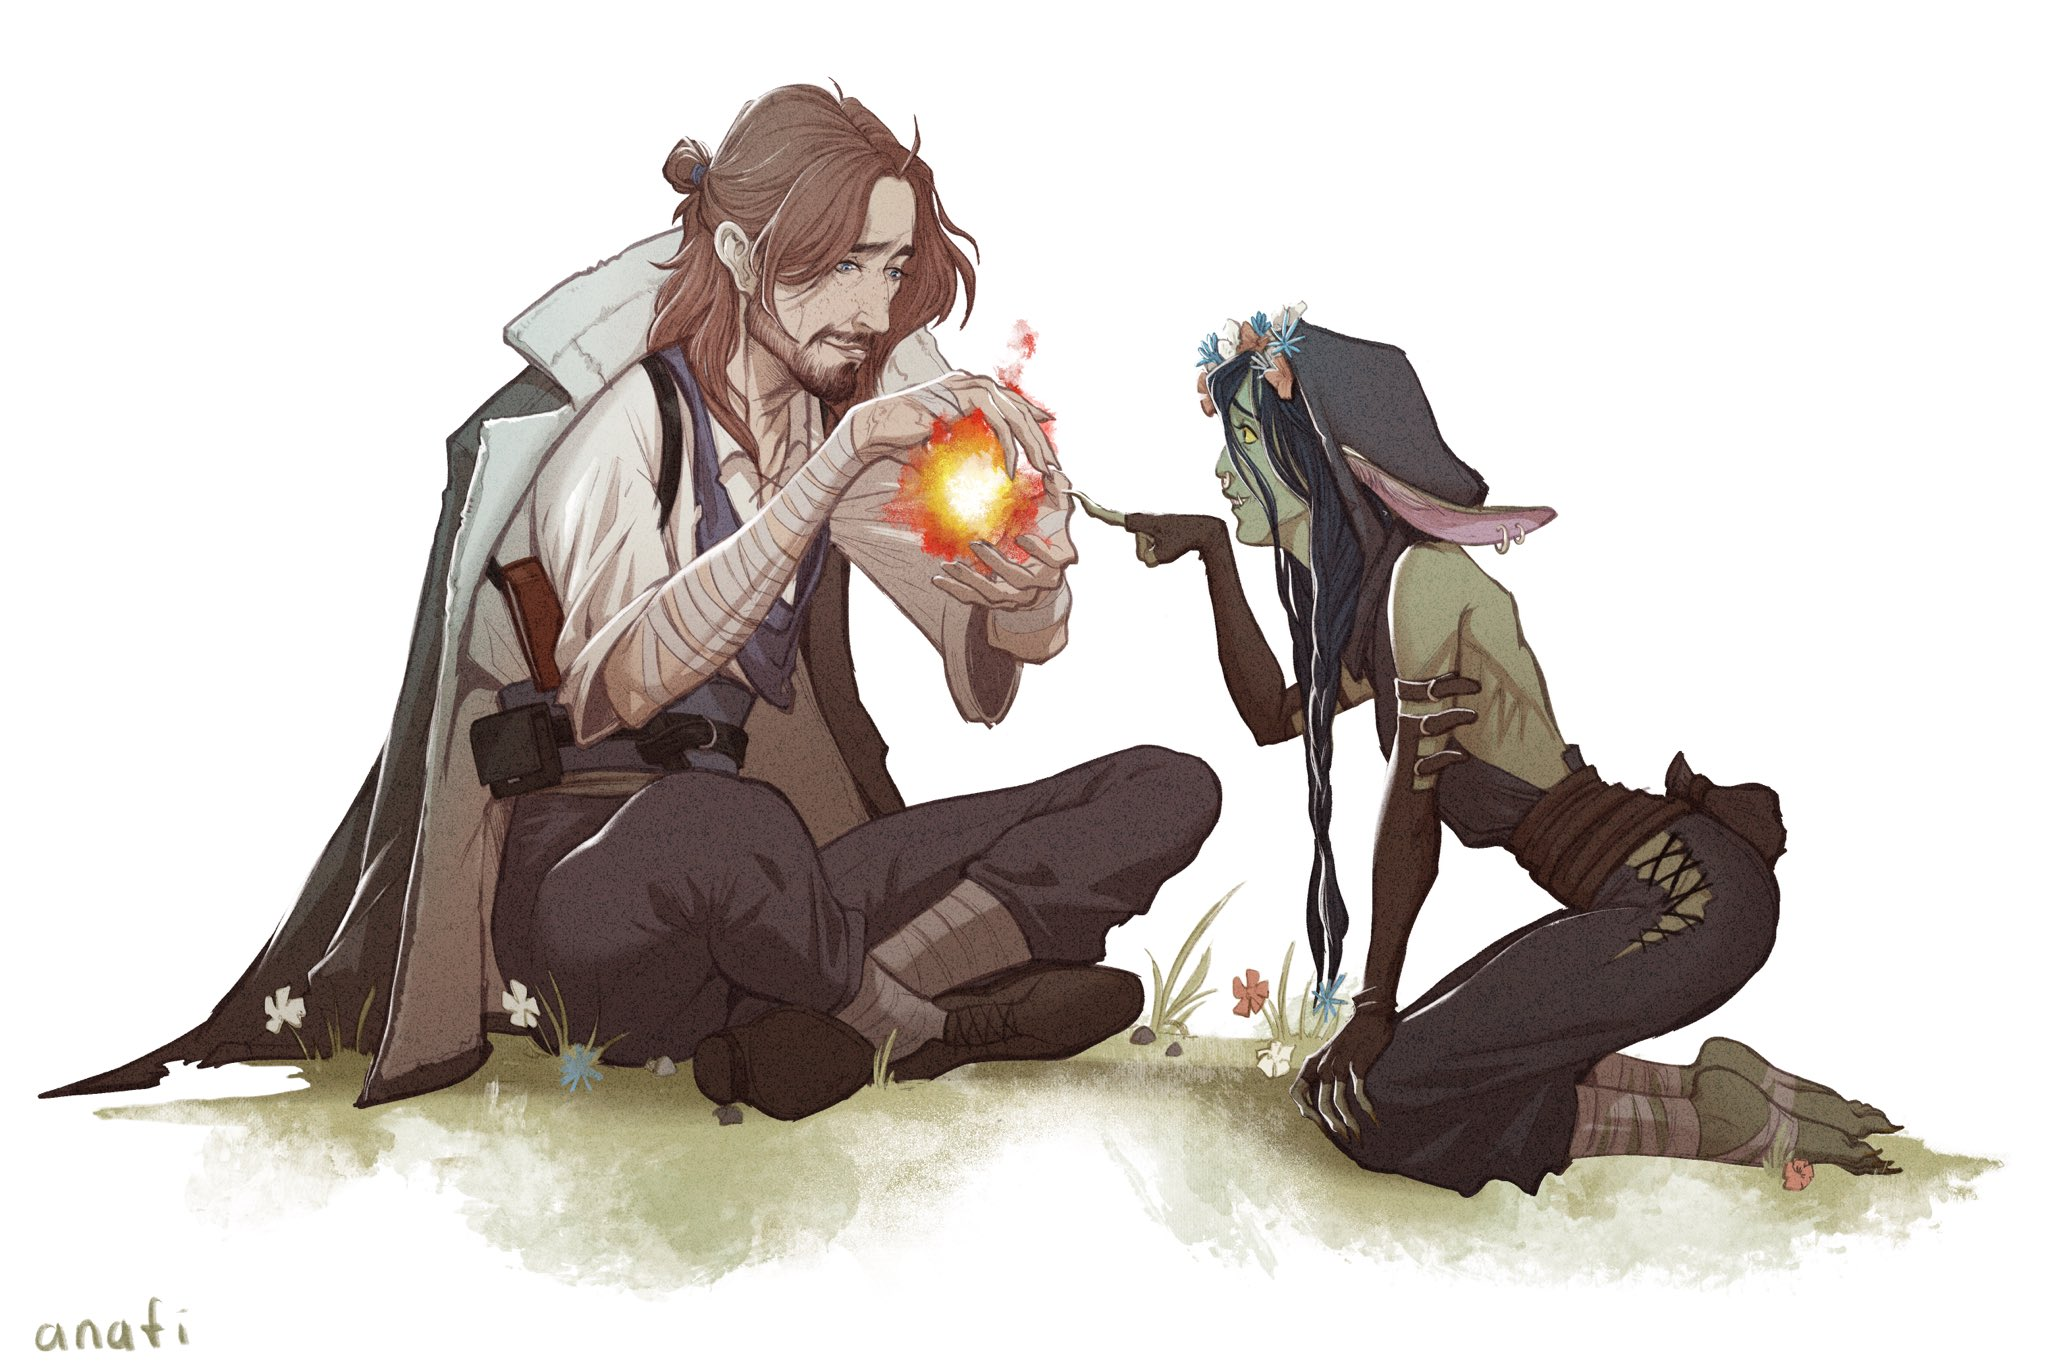 Nott Critical Role Wiki Fandom I search the web to find the best critical role fan art and show it to all of the fantasy lovers around. nott critical role wiki fandom